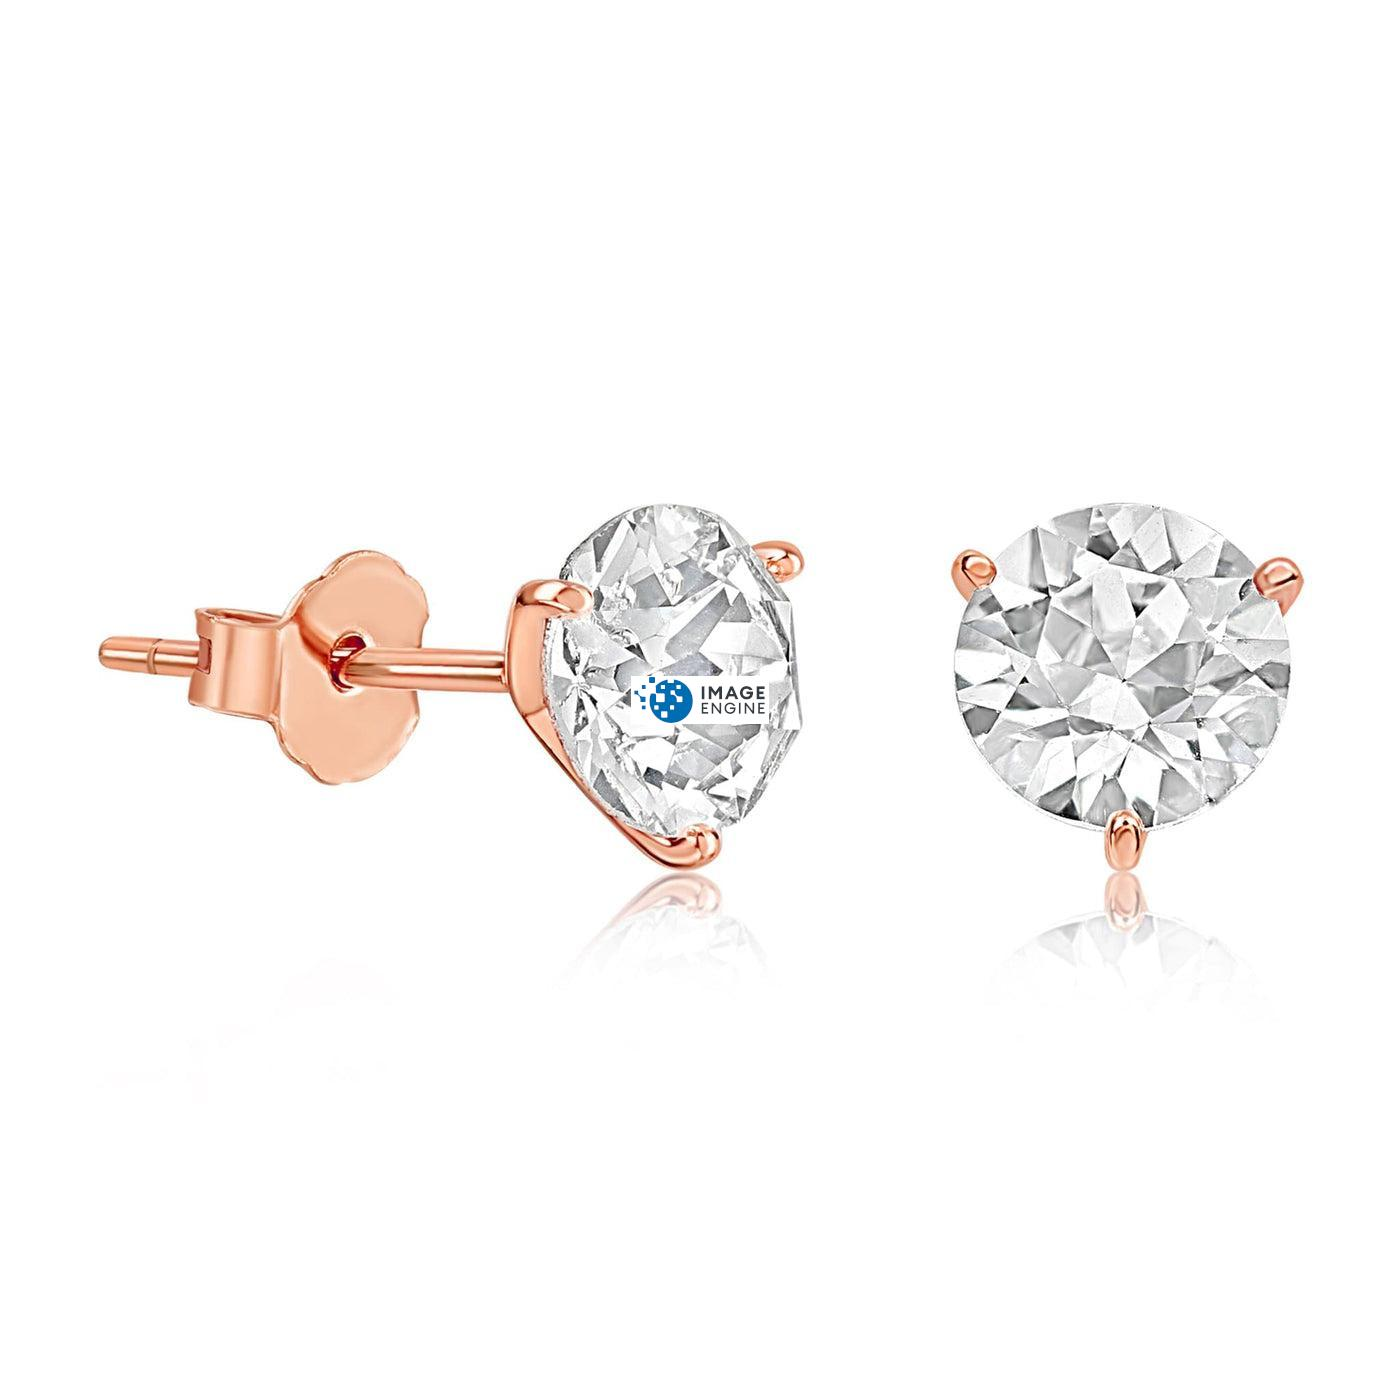 Swarovski Stud Earrings - Facing to the Right - 18K Rose Gold Vermeil